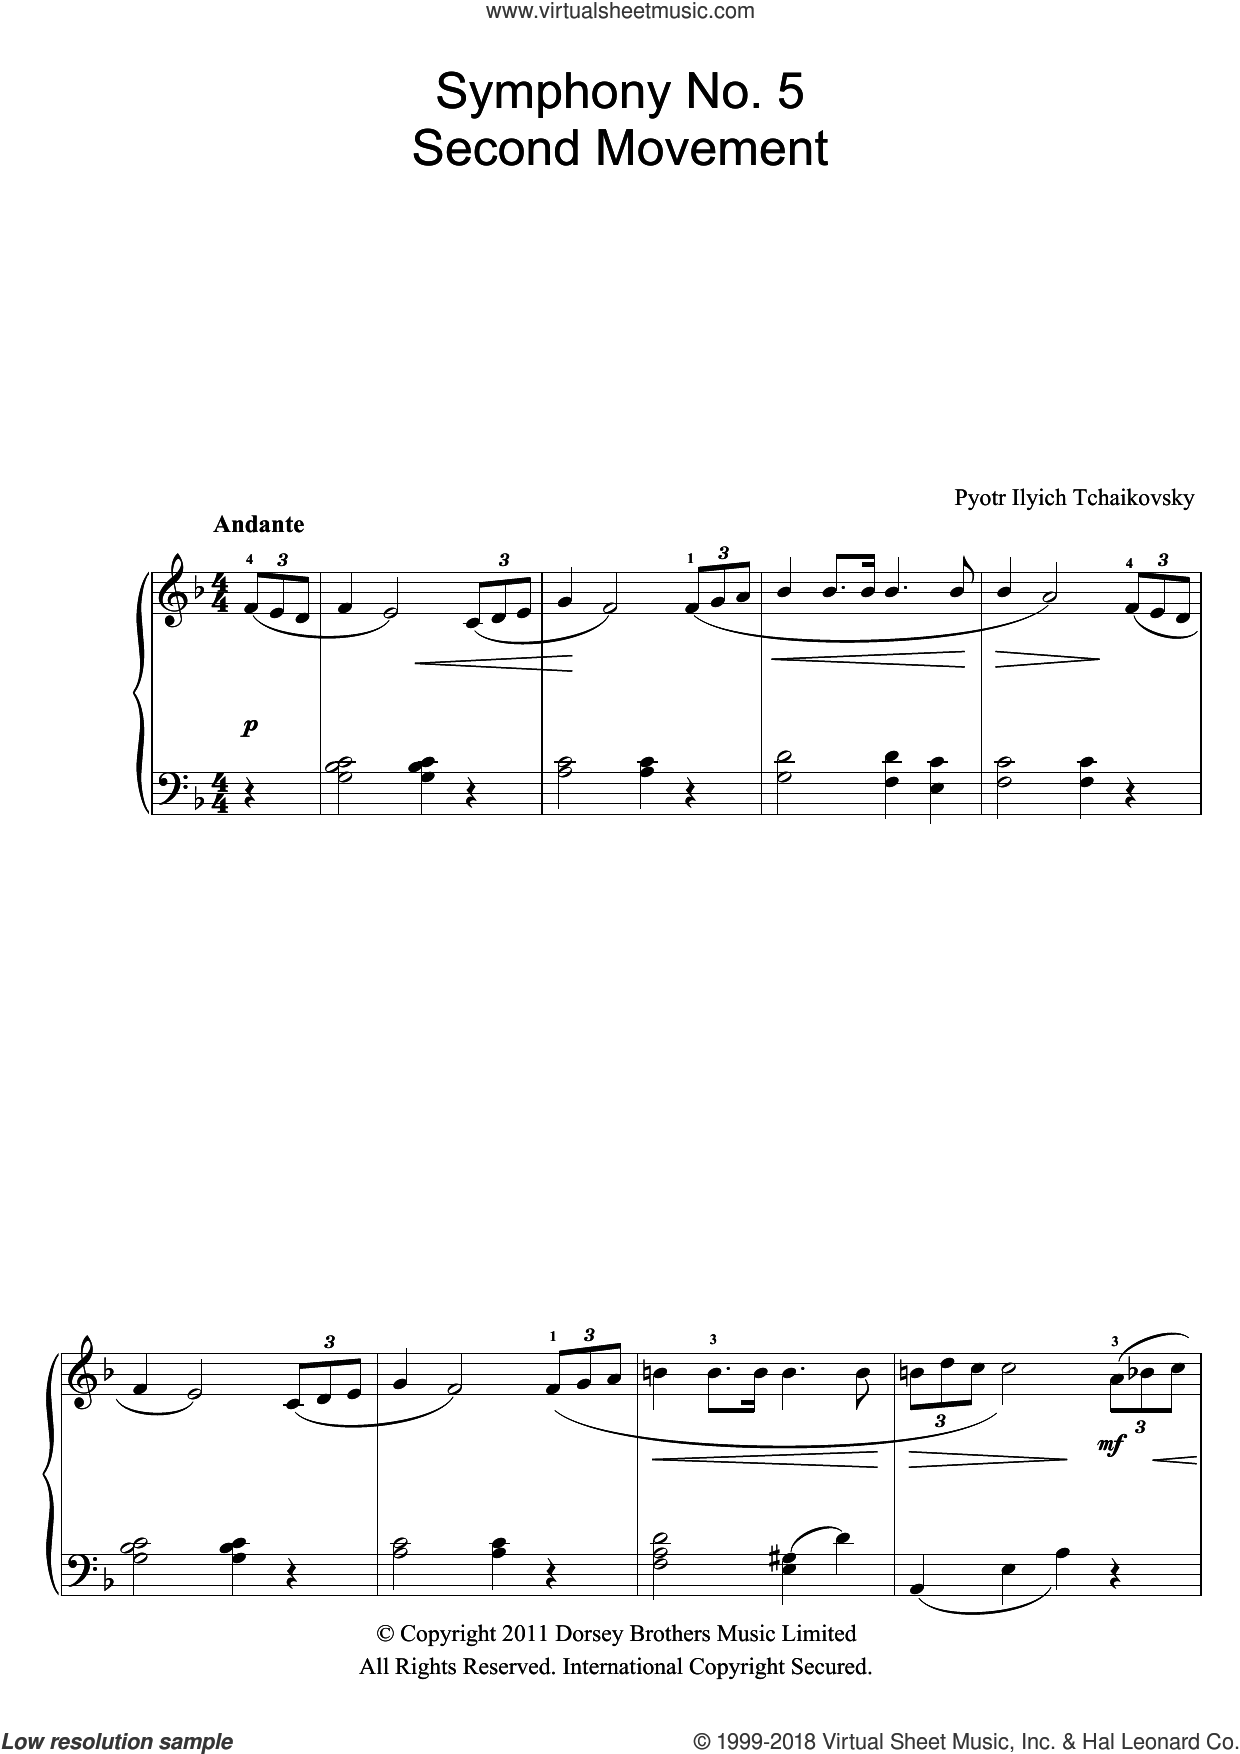 Symphony No.5 (2nd Movement: Andante) sheet music for piano solo (beginners) by Pyotr Ilyich Tchaikovsky, classical score, beginner piano (beginners)